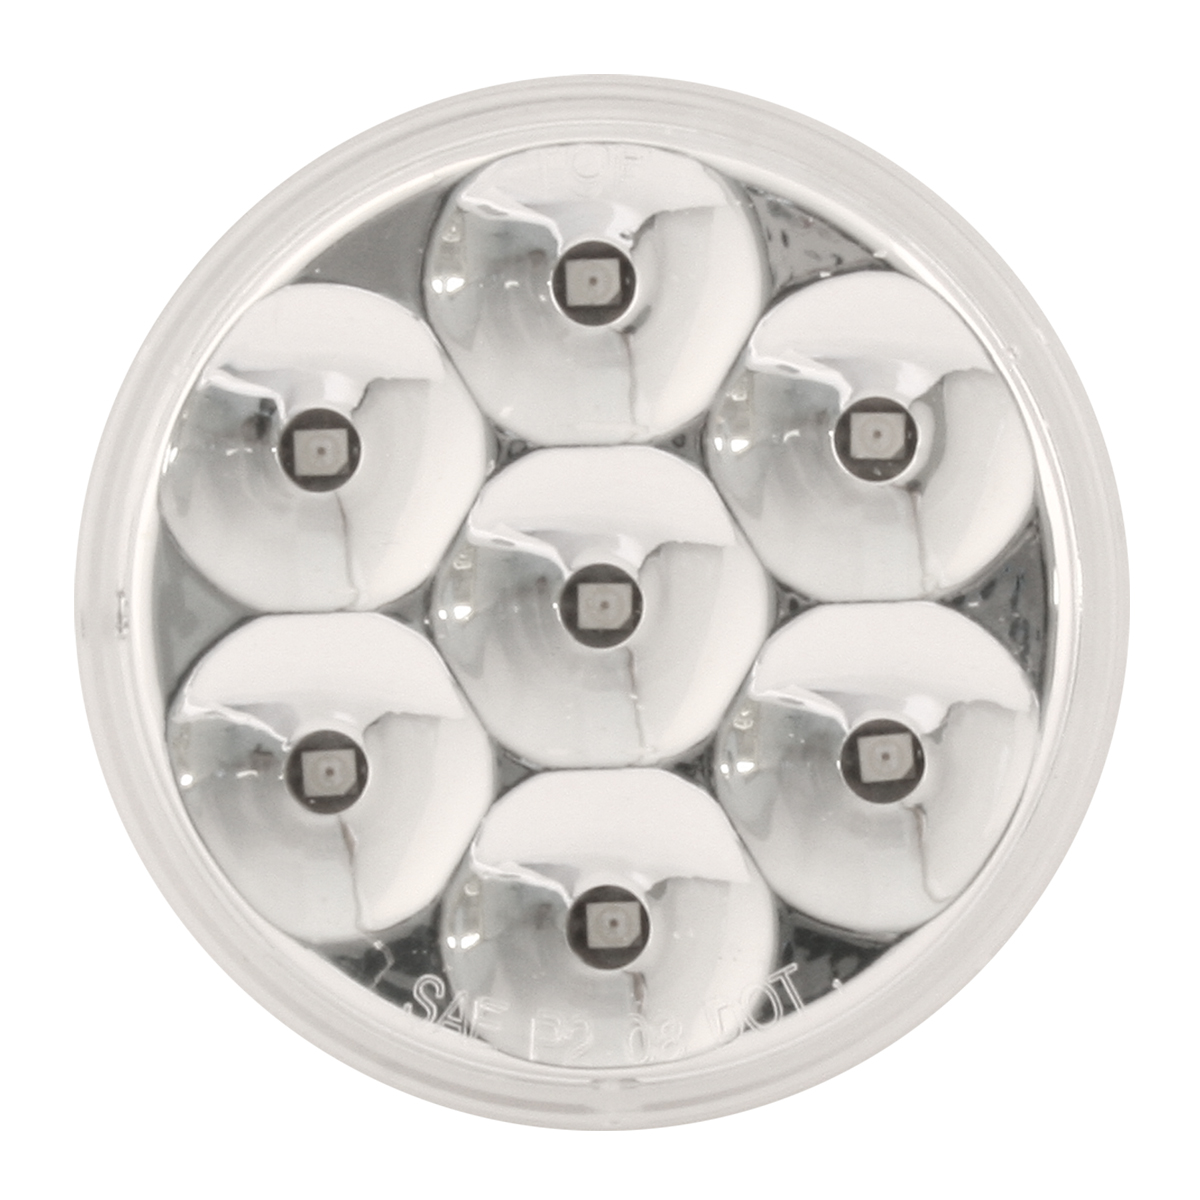 "2"" Dual Function Pearl LED Light in Clear Lens"